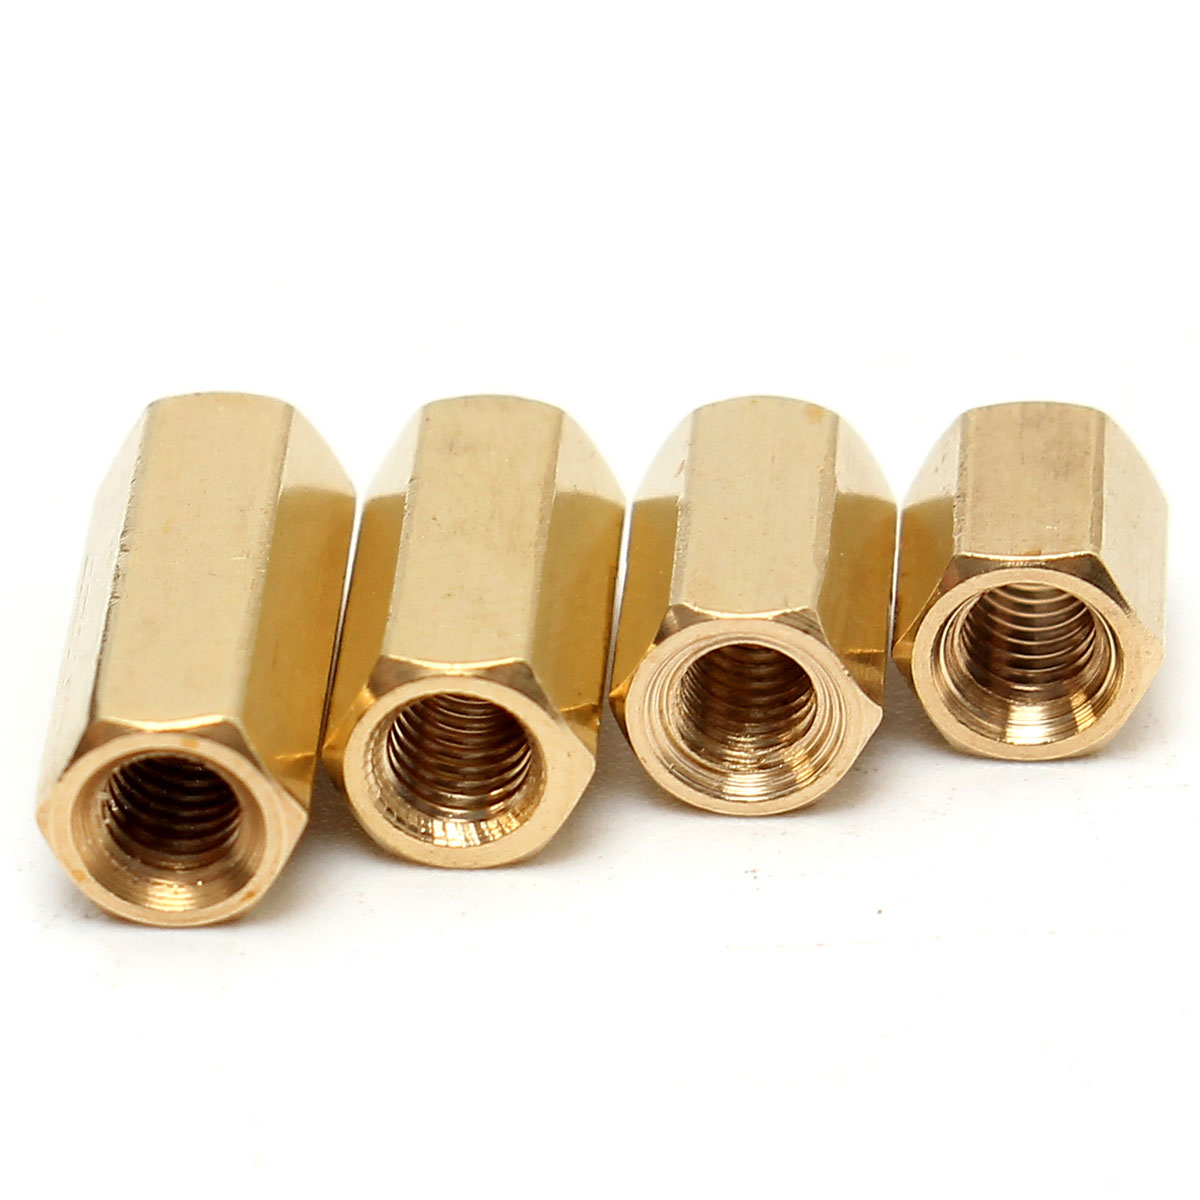 40Pcs Brass Hexagonal Female Nut <font><b>M3</b></font> <font><b>x</b></font> <font><b>12mm</b></font> Female Nut Bolts PCB Board Standoff/Spacer image